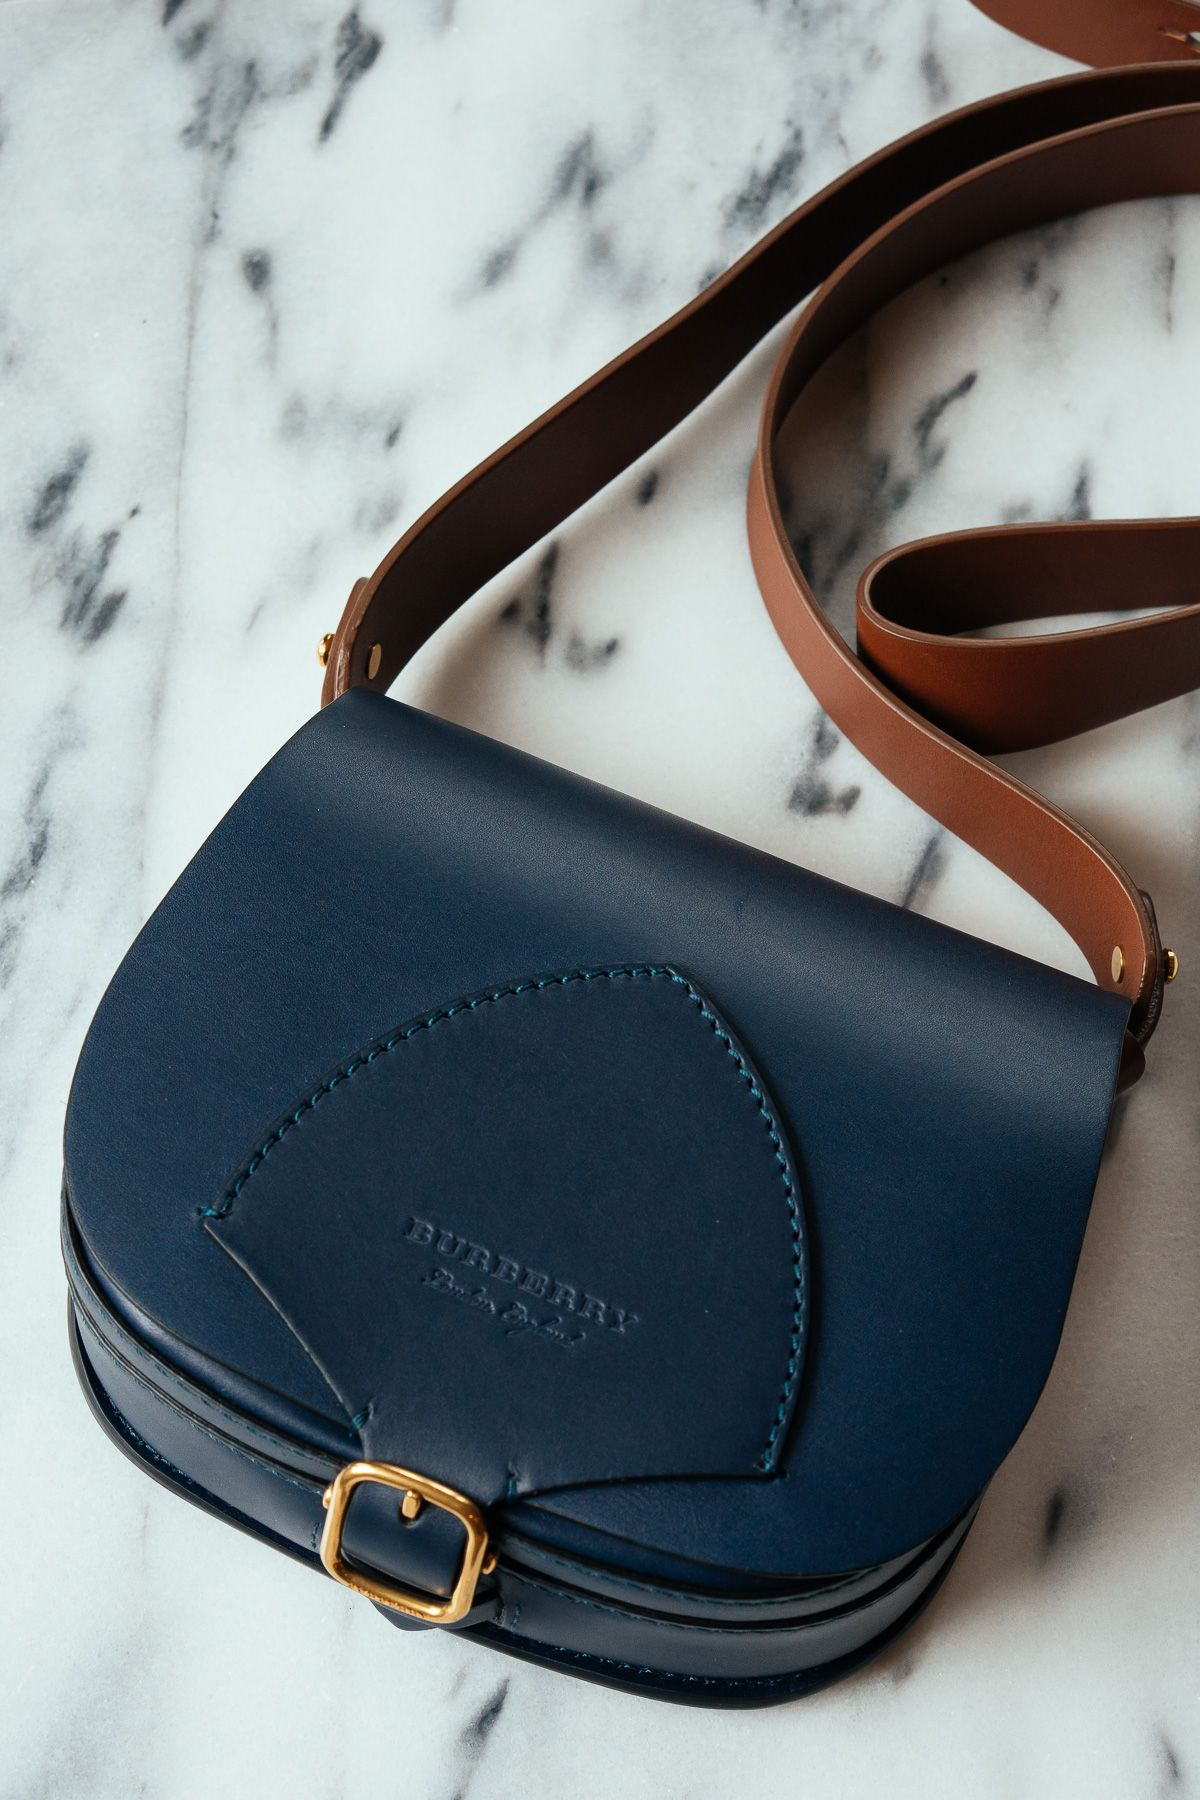 79b4e585d26 1395 Meet Our Latest Bag Crush  The Burberry Satchel in Indigo Leather -  PurseBlog